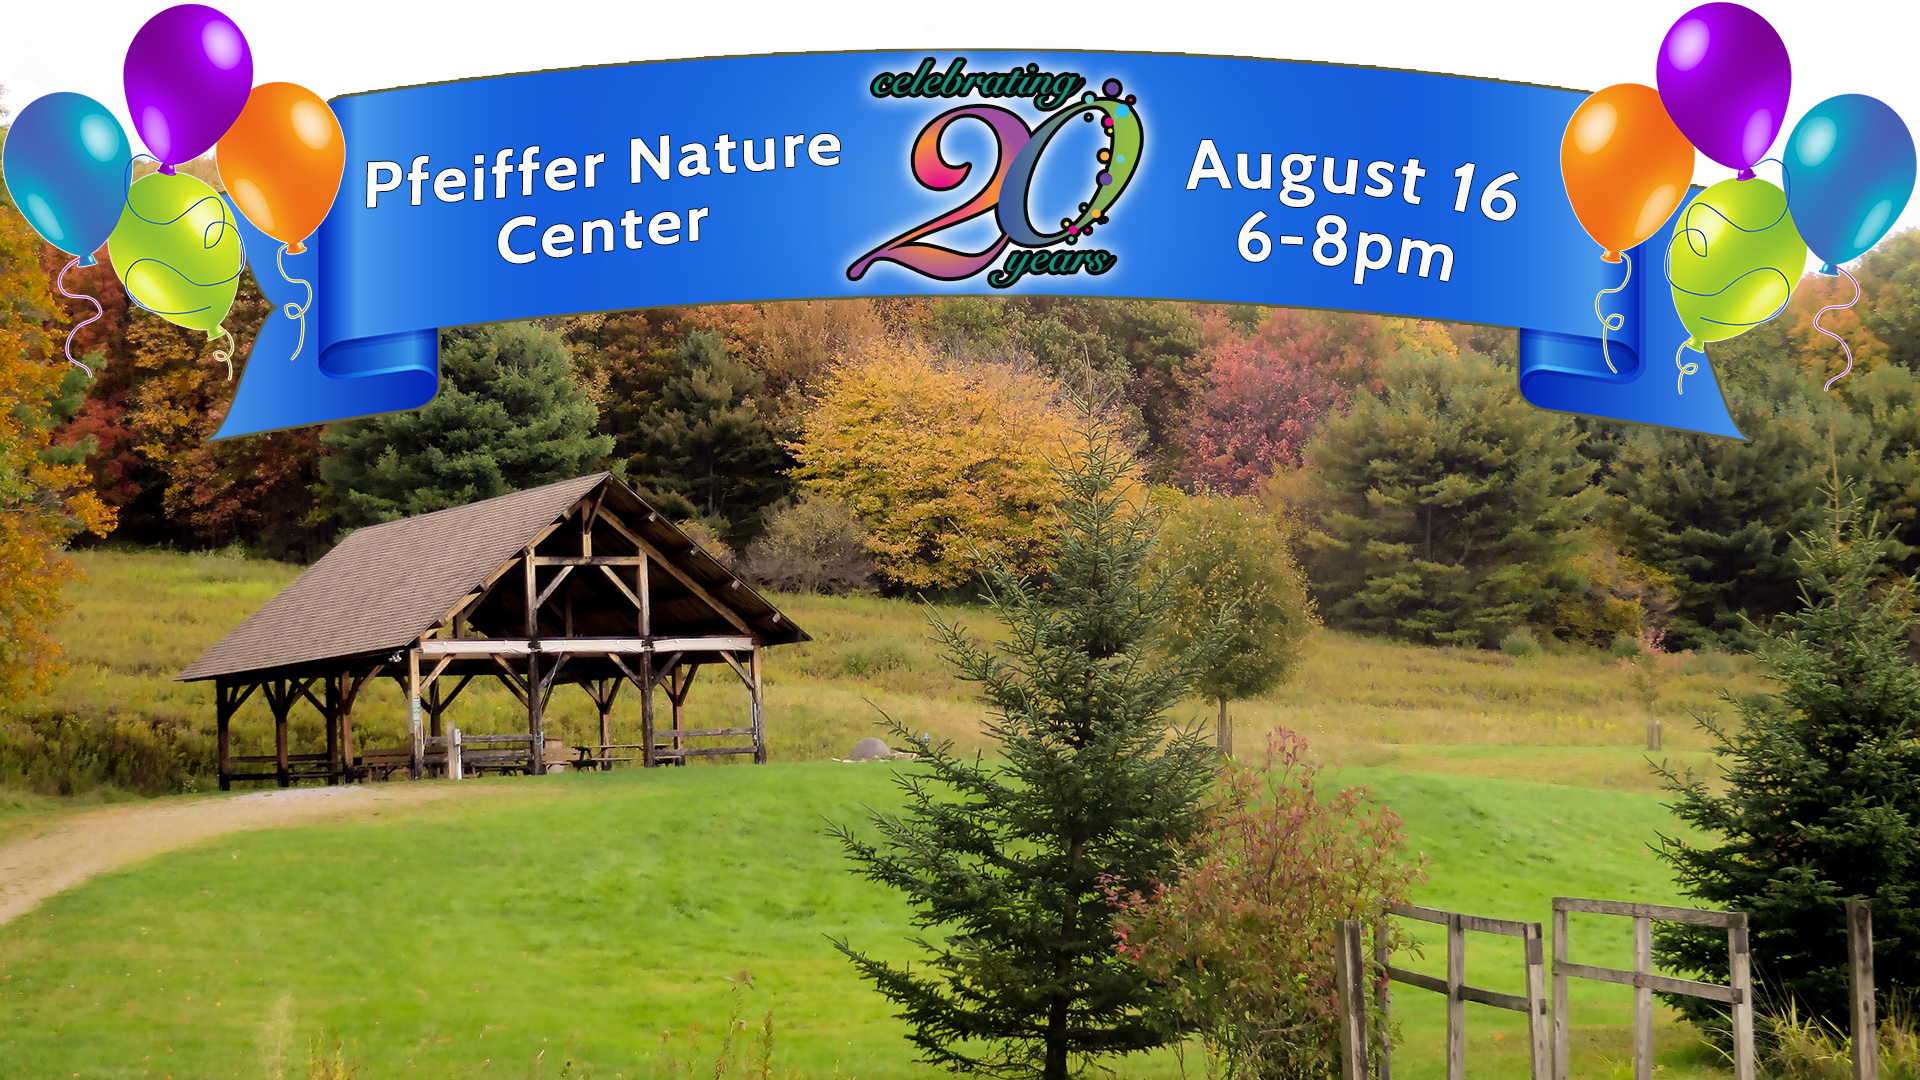 Pfeiffer Nature Center's 20th Anniversary Party